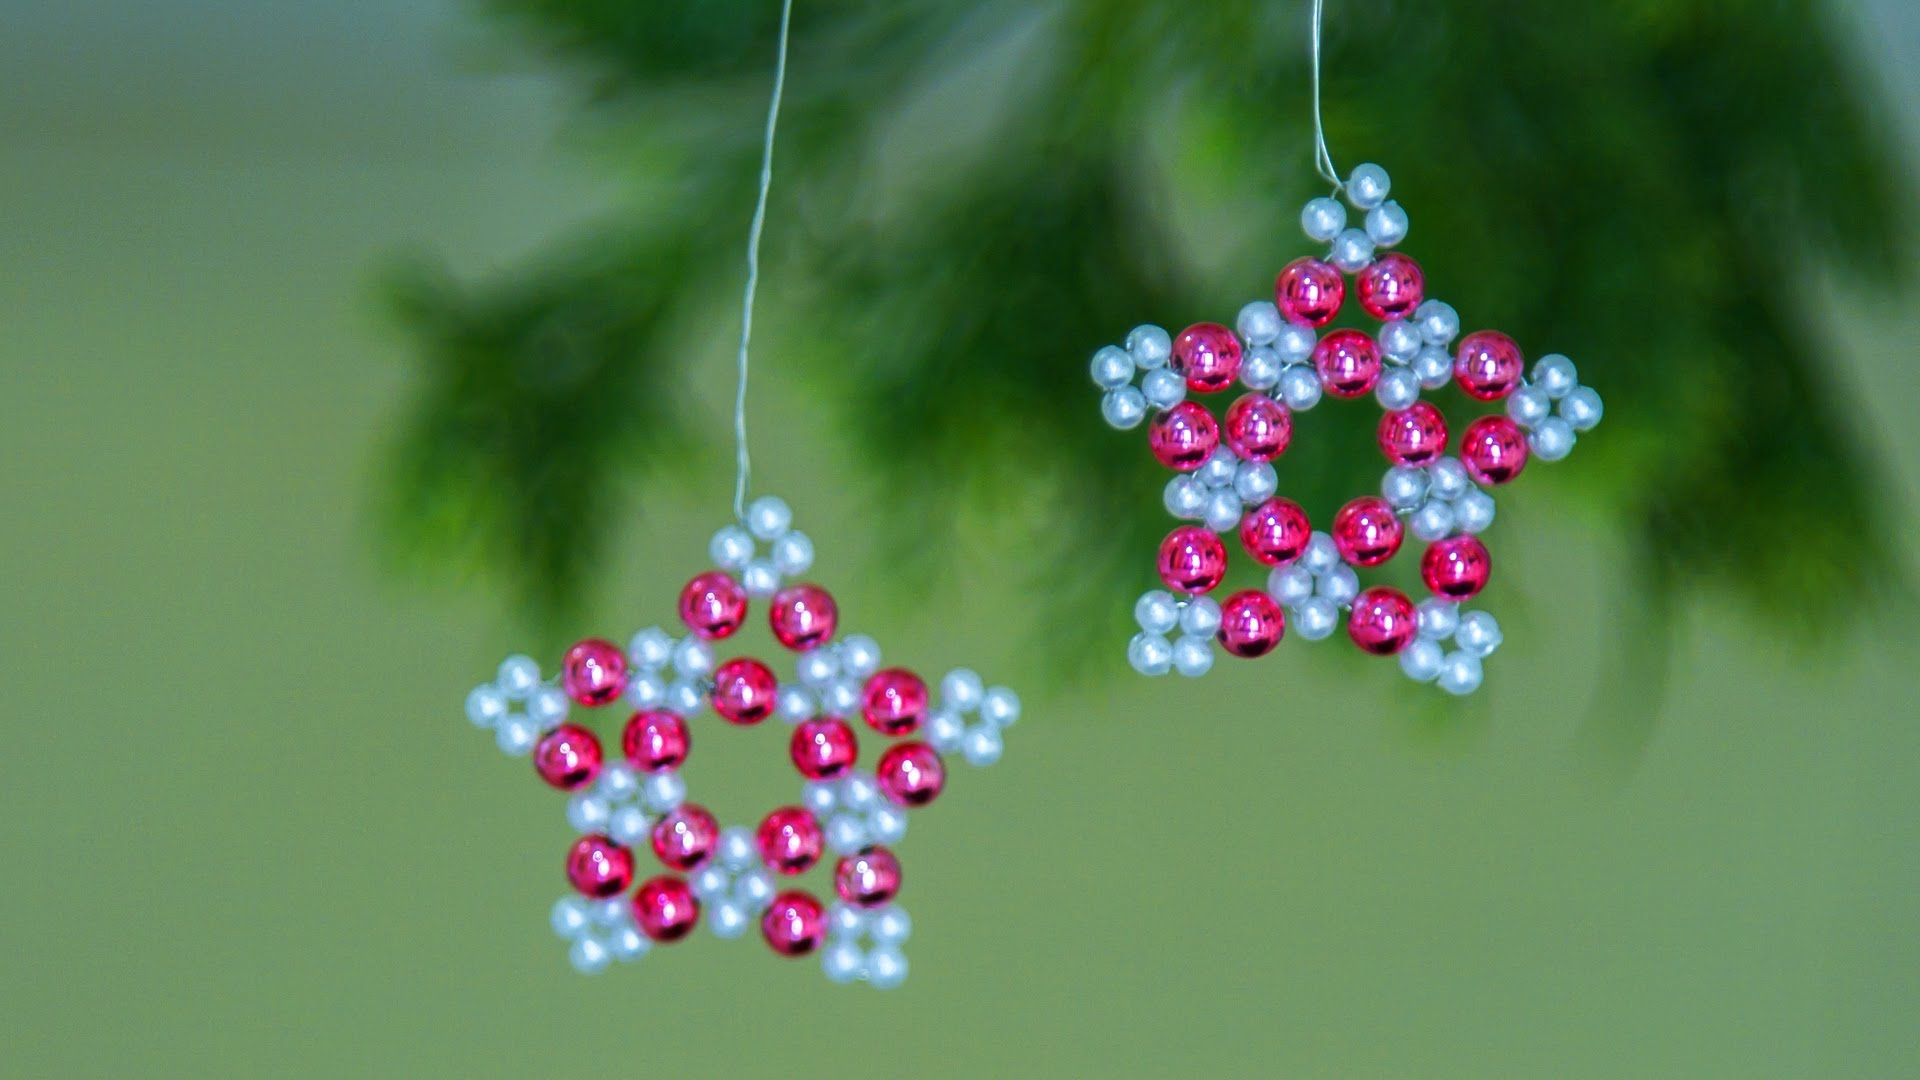 How To Make Christmas Ornament Diy Christmas Ornament Christmas Ornaments To Make Beaded Christmas Decorations Christmas Ornaments